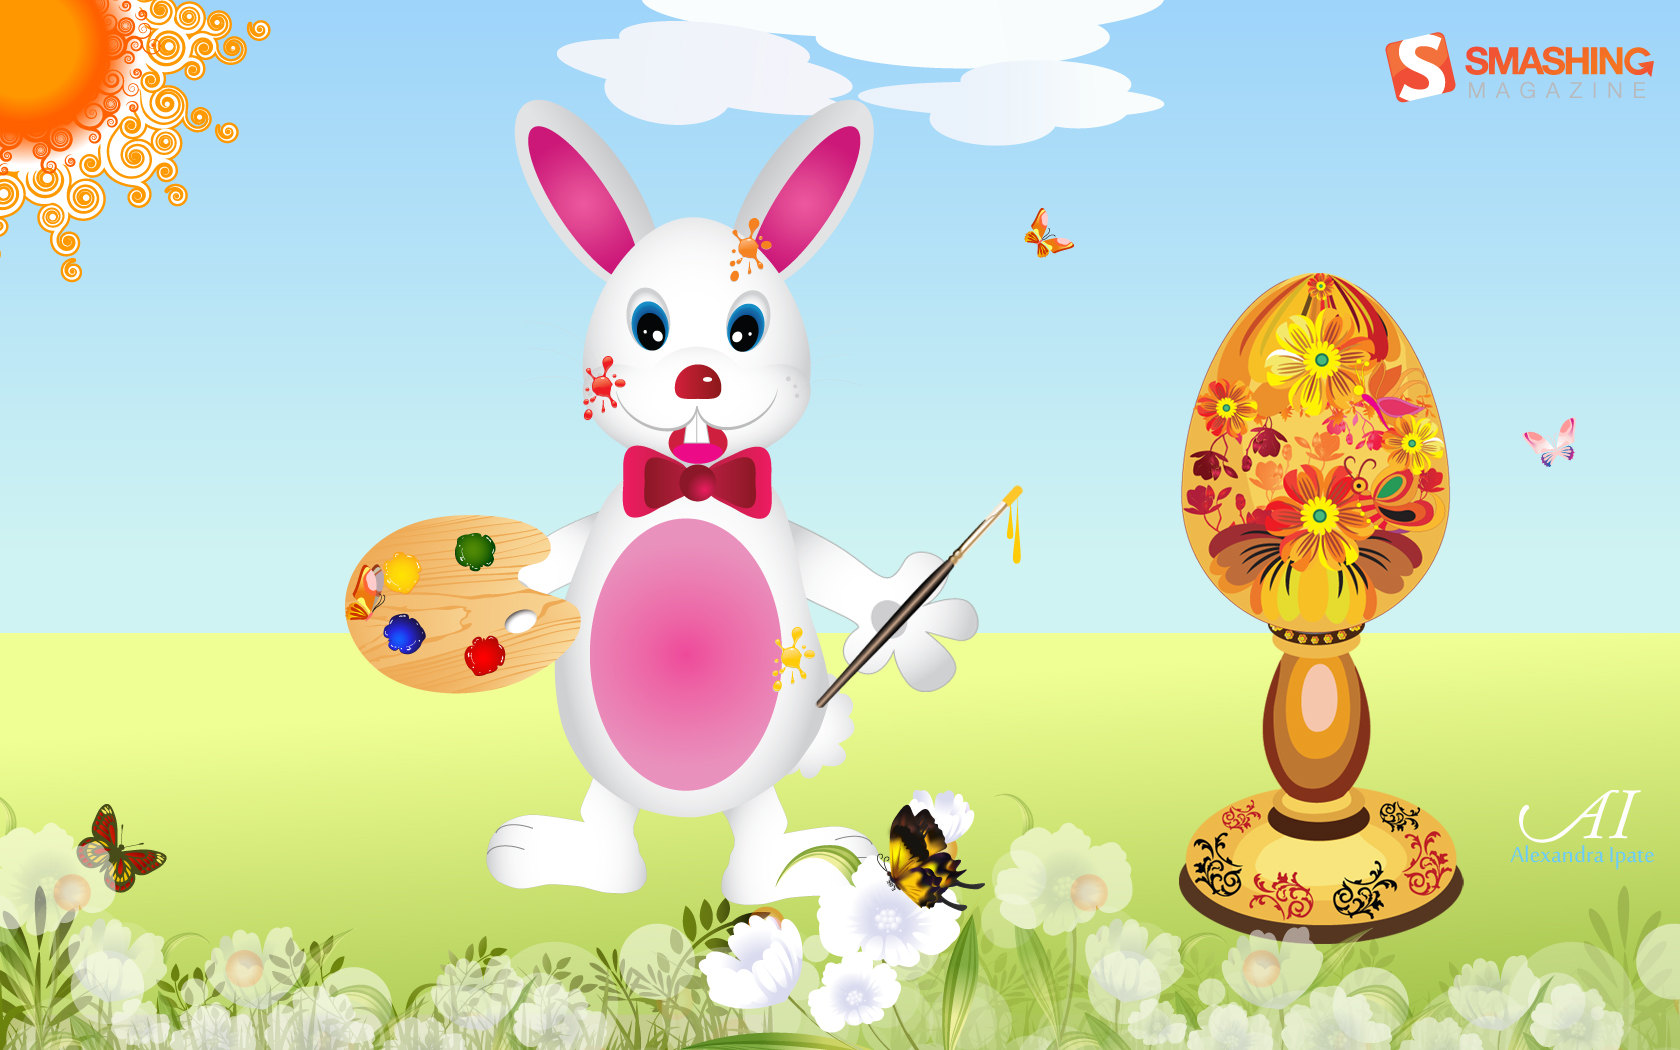 35 Joyful Easter Wallpaper Funny Bunnies And Painted